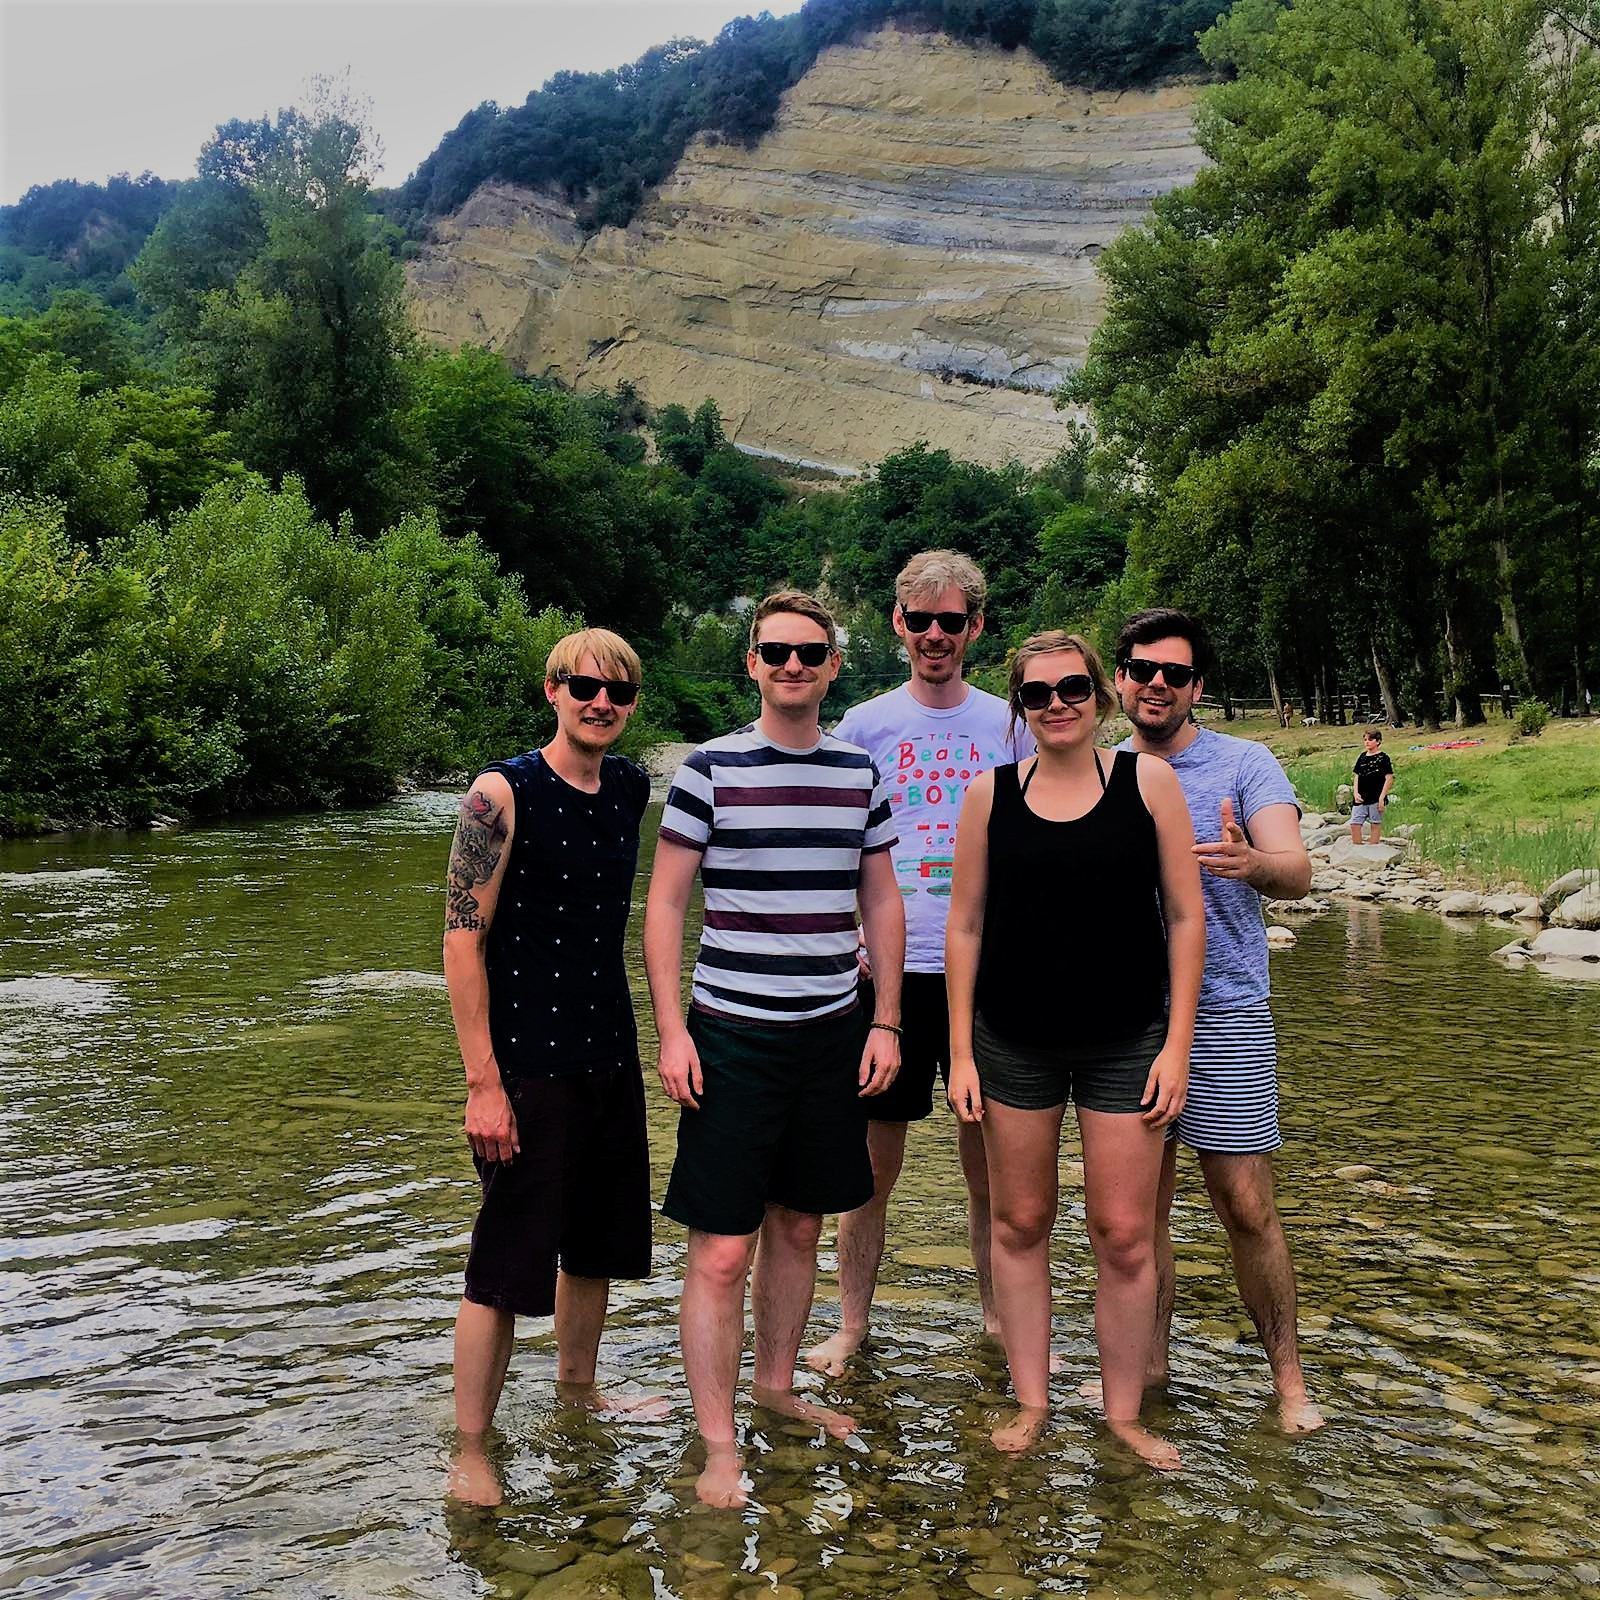 River | Imola in Musica | Backpacking with Bacon